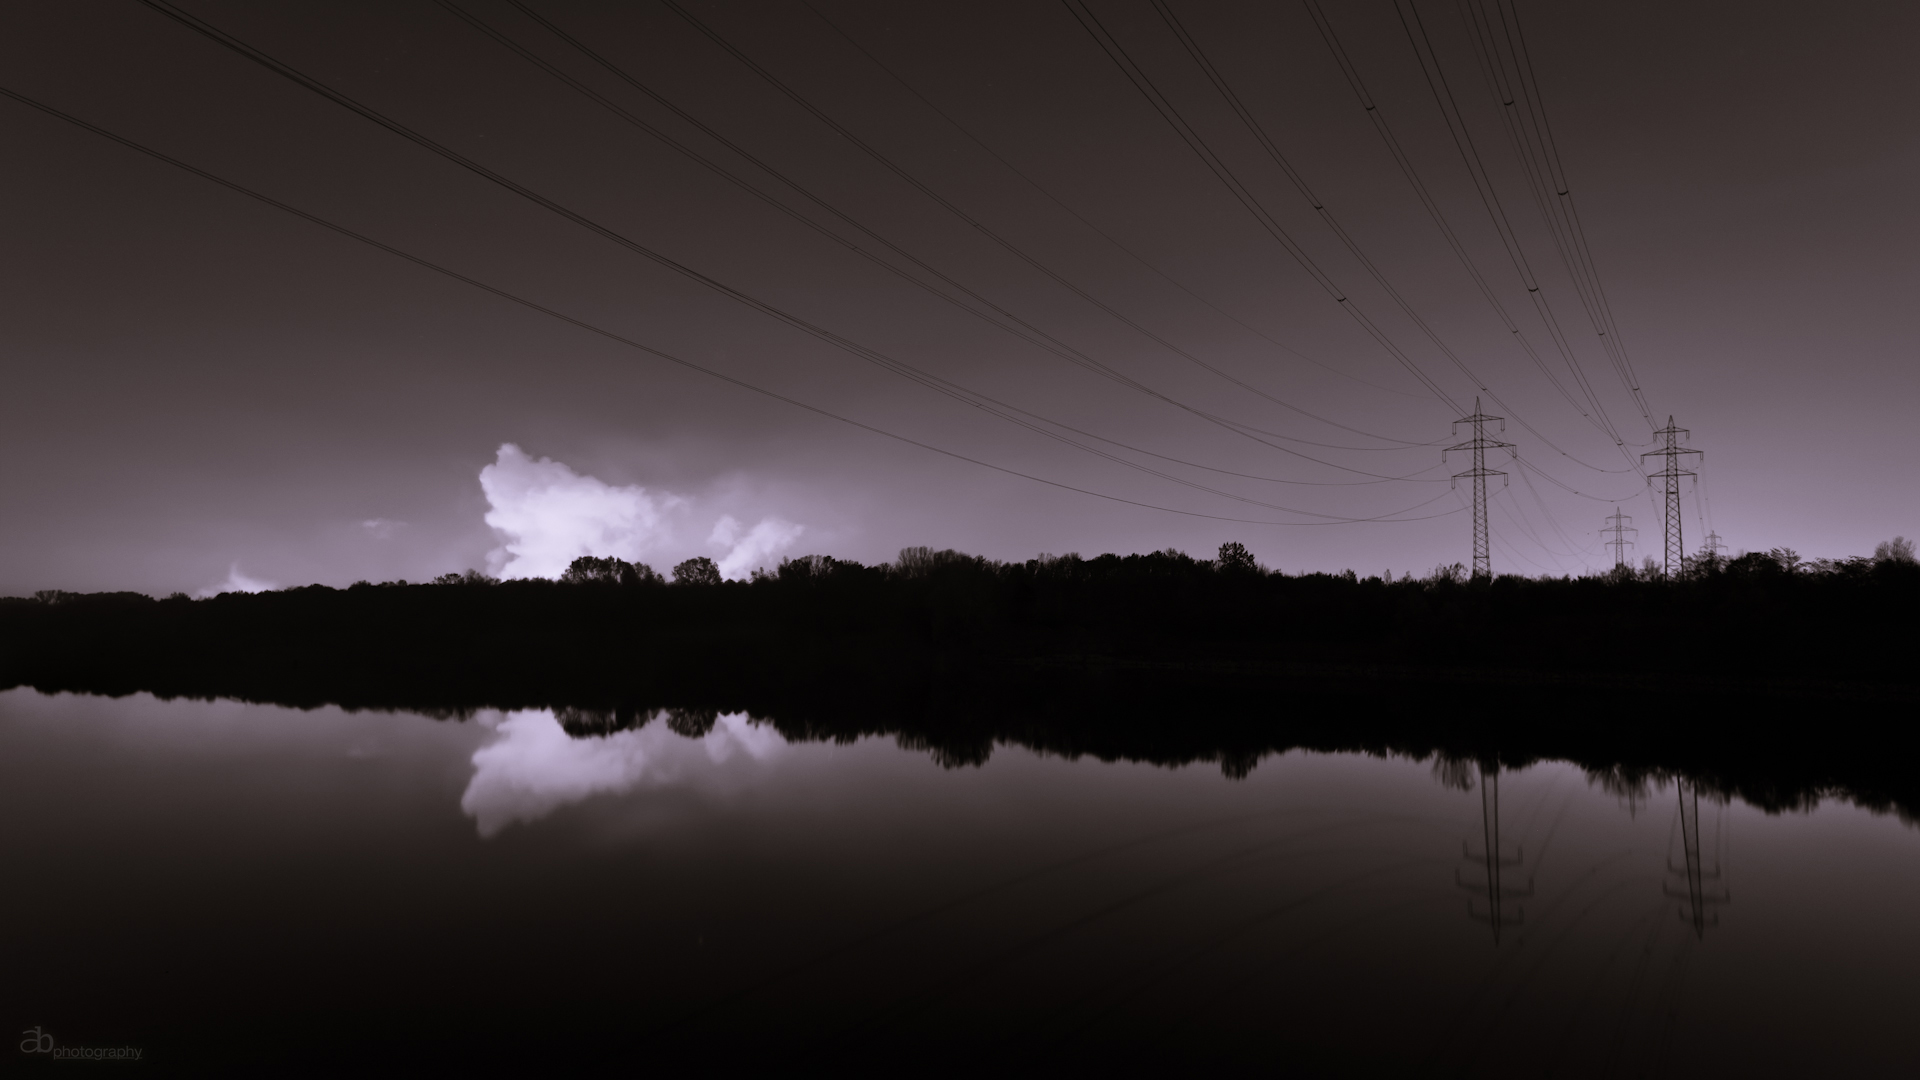 Power lines - Wallpaper by cluster5020